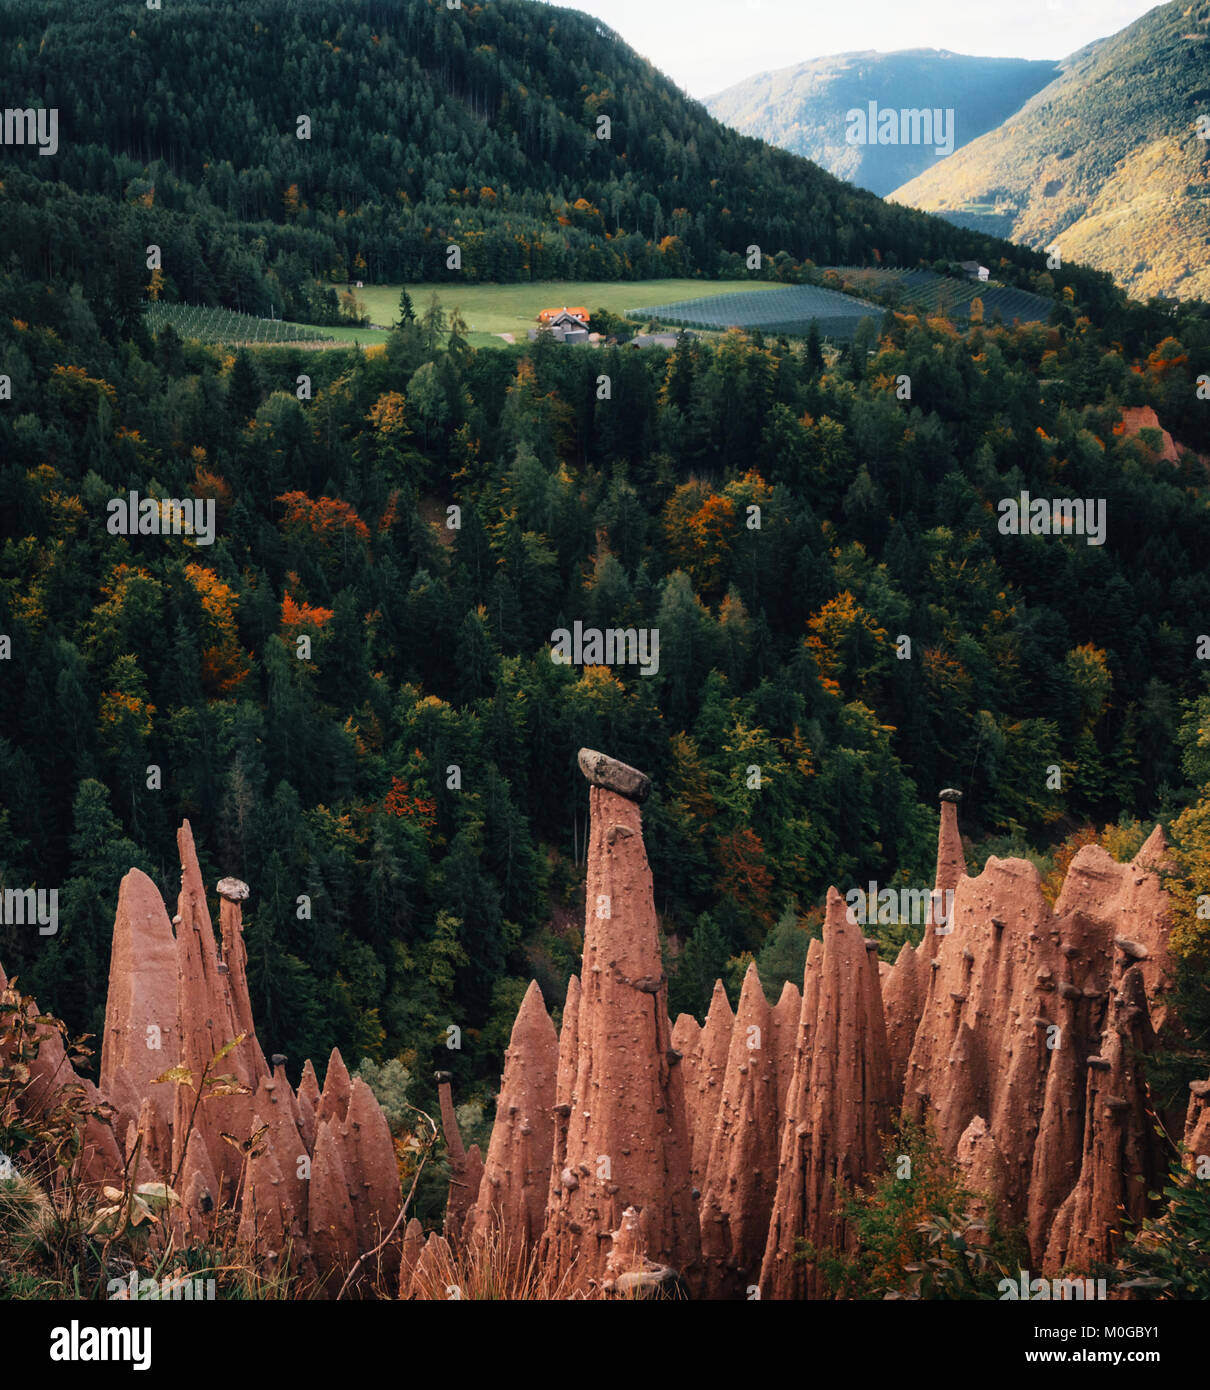 Earth pyramids with stones on top in Renon Ritten region, South Tyrol, Italy. - Stock Image